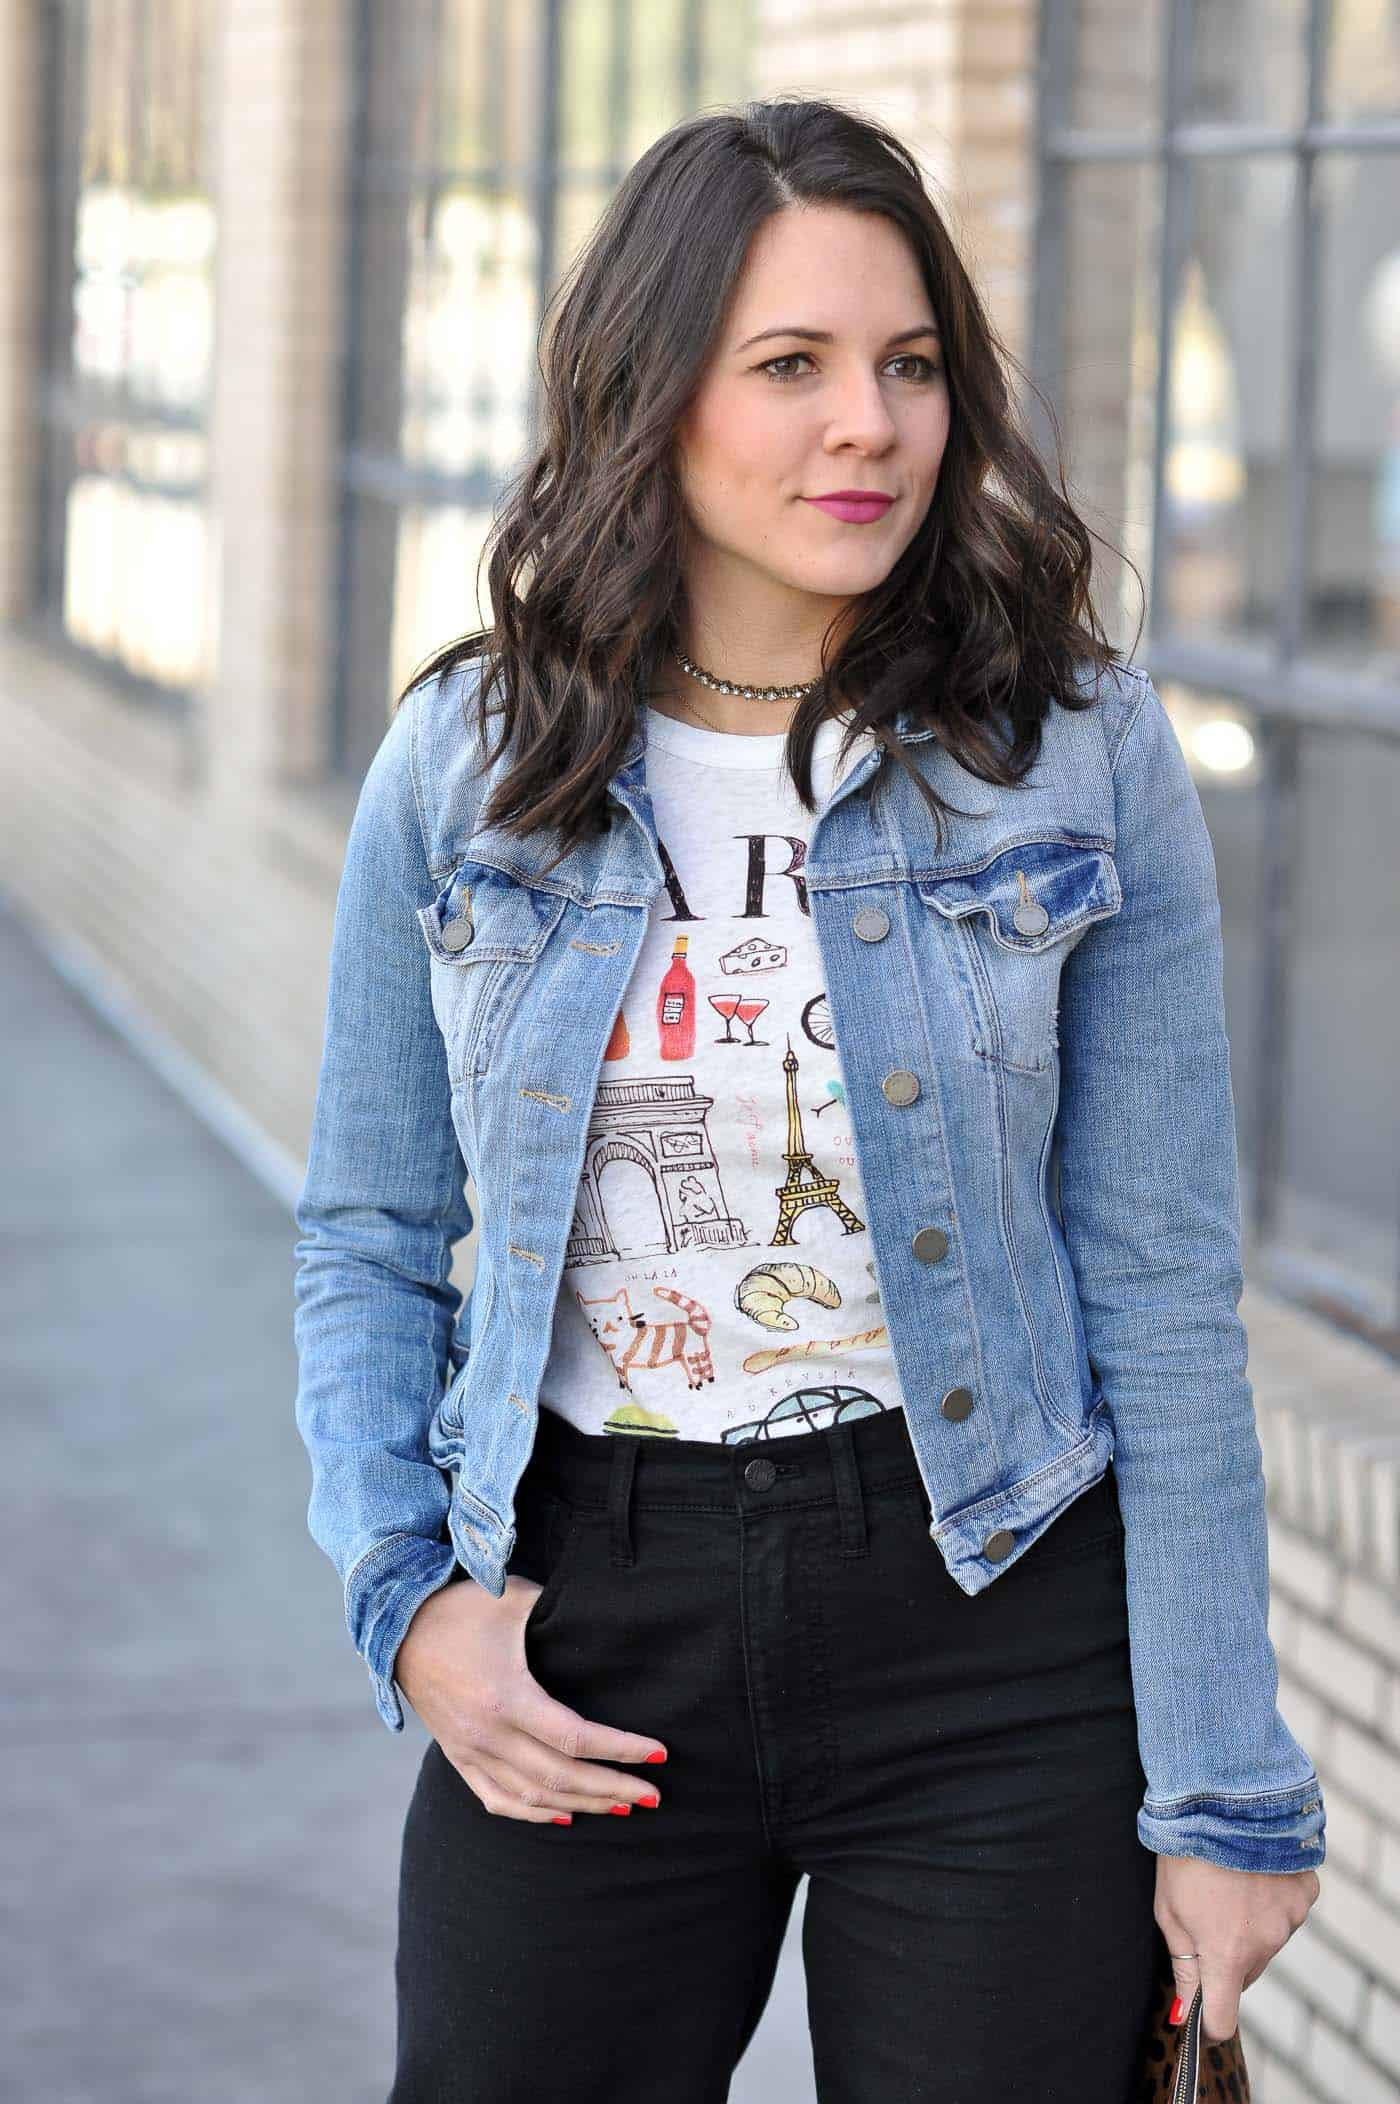 Paris graphic tee - denim jacket for spring - My Style Vita @mystylevita